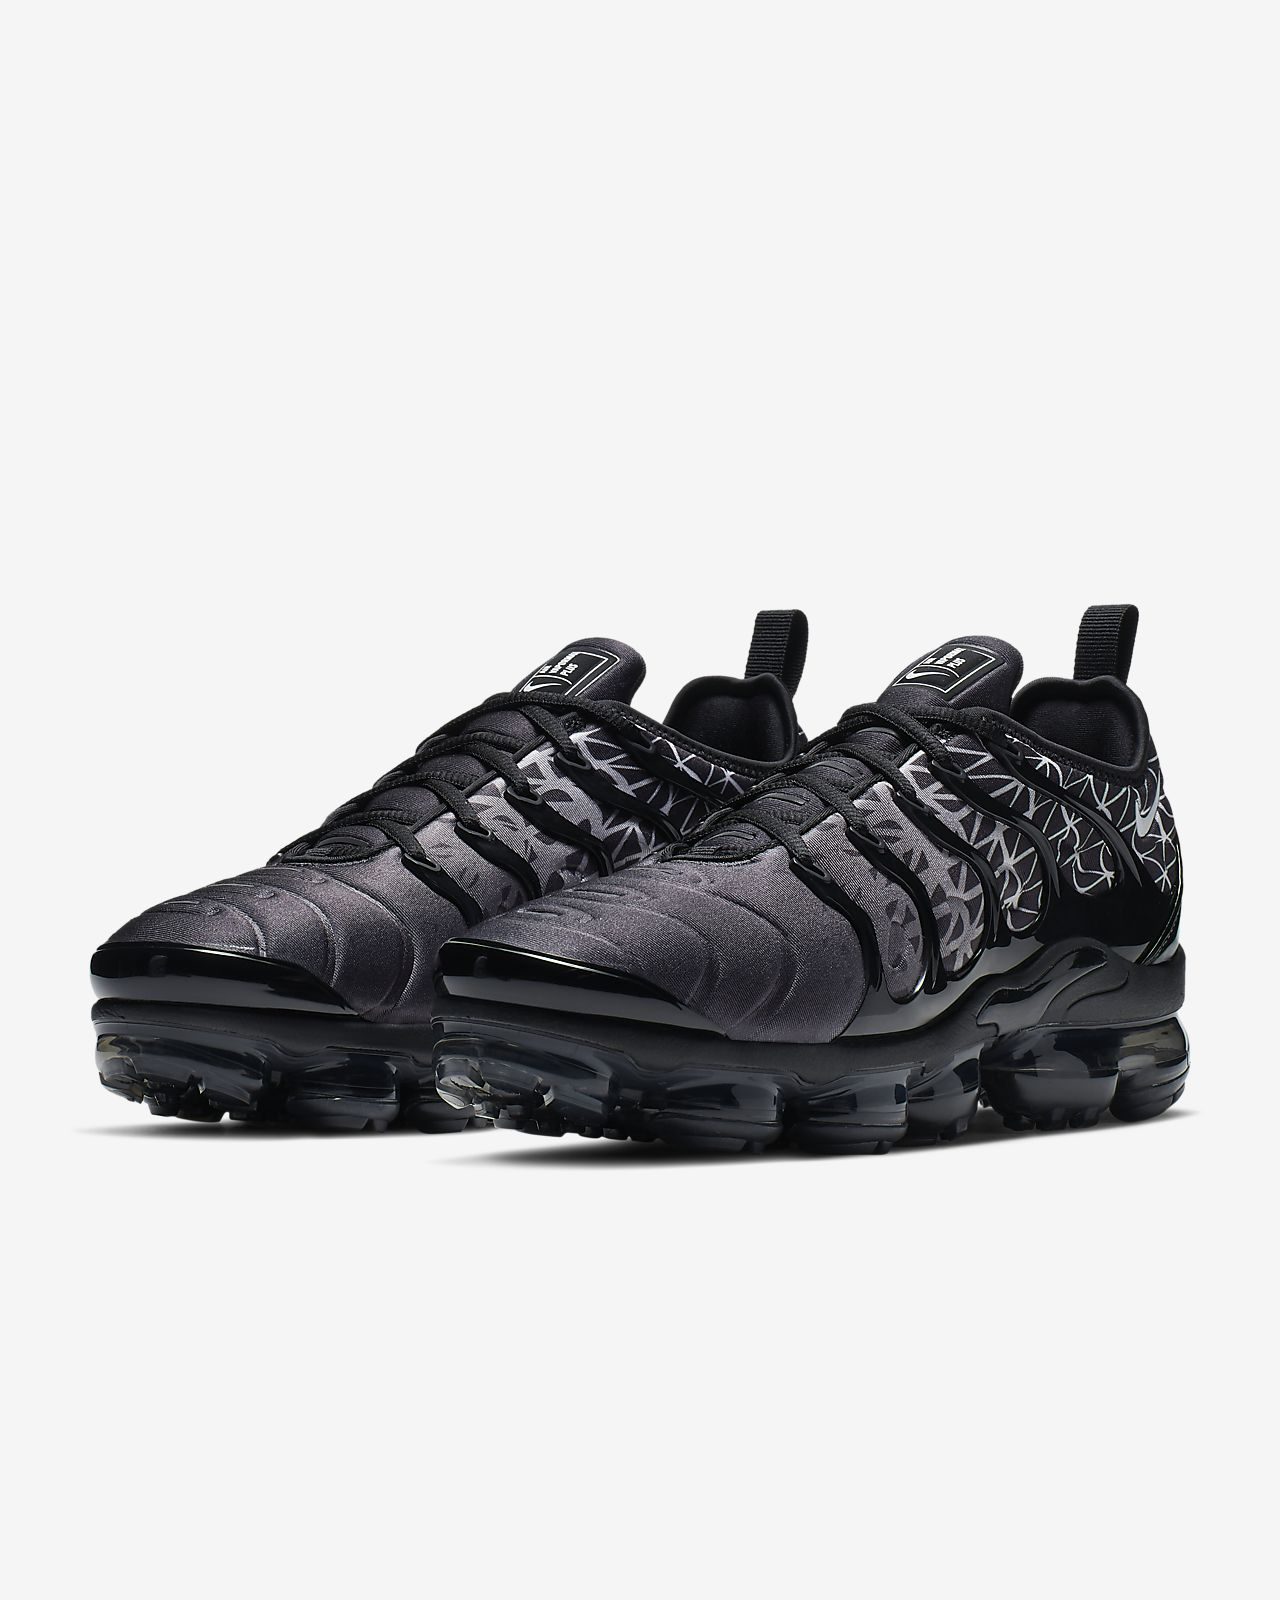 sneakers for cheap 511c1 00da8 ... Chaussure Nike Air VaporMax Plus pour Homme